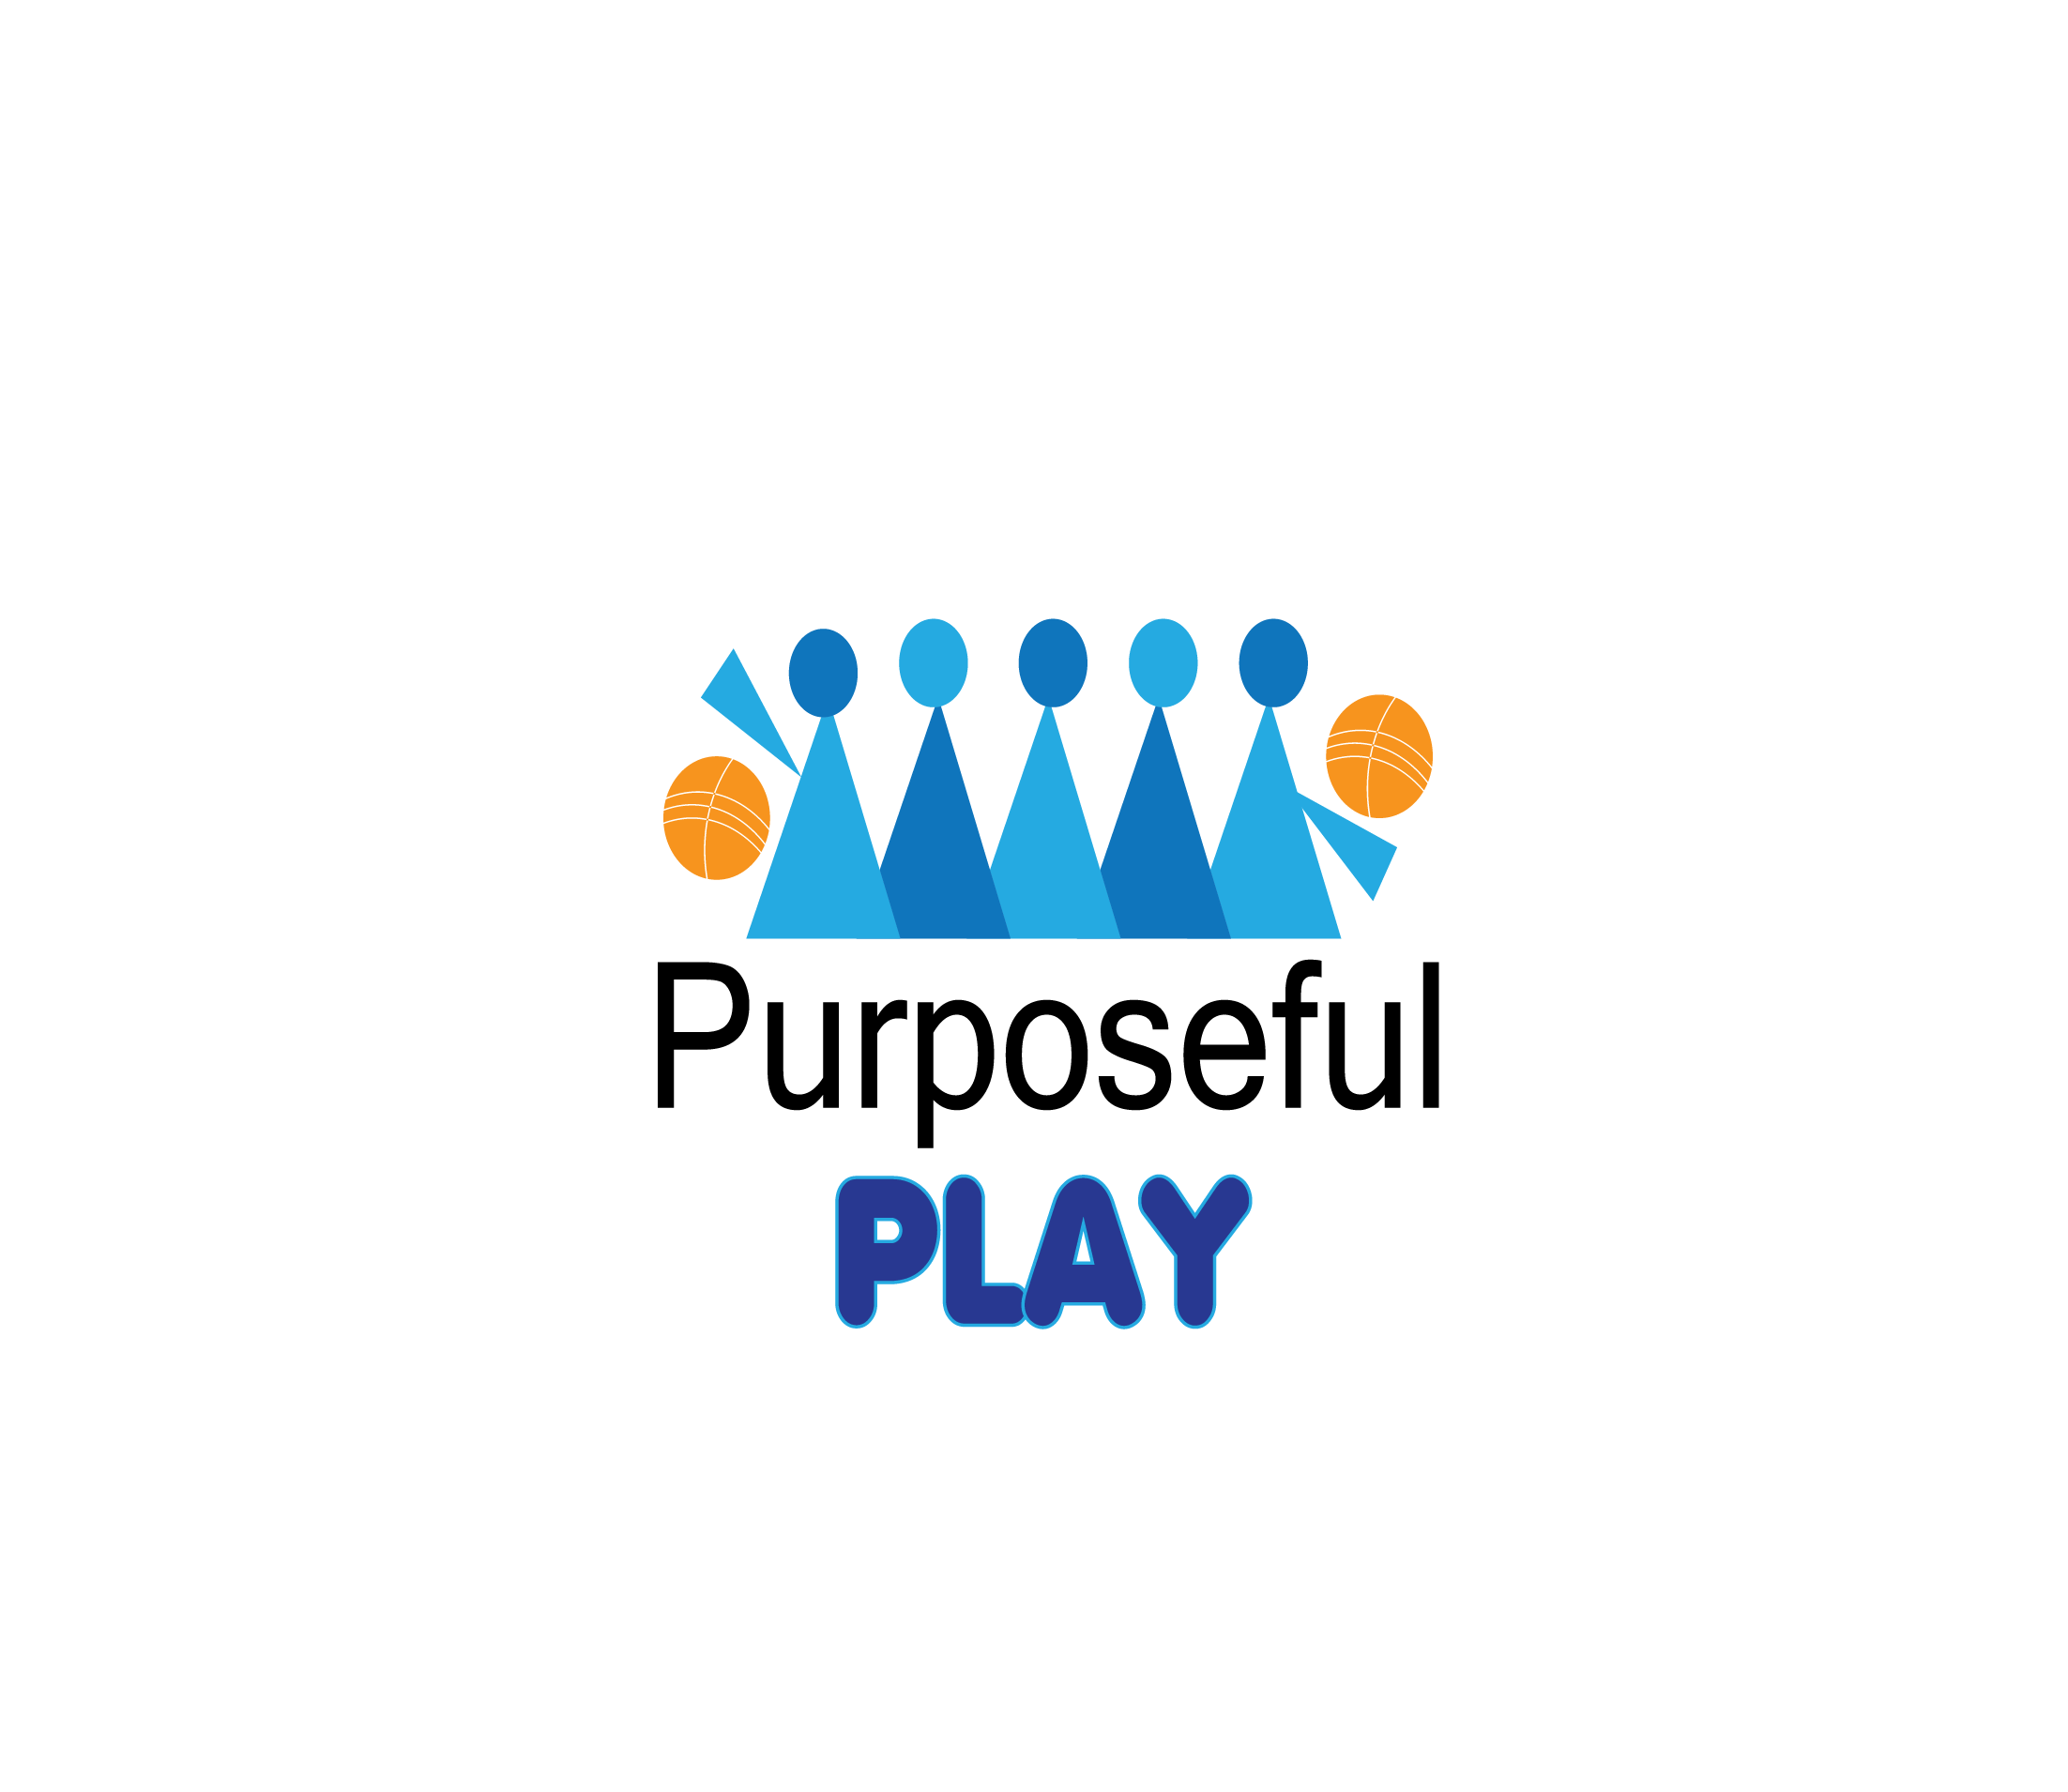 Logo Design by aanygraphic - Entry No. 32 in the Logo Design Contest Purposeful PLAY Logo Design.